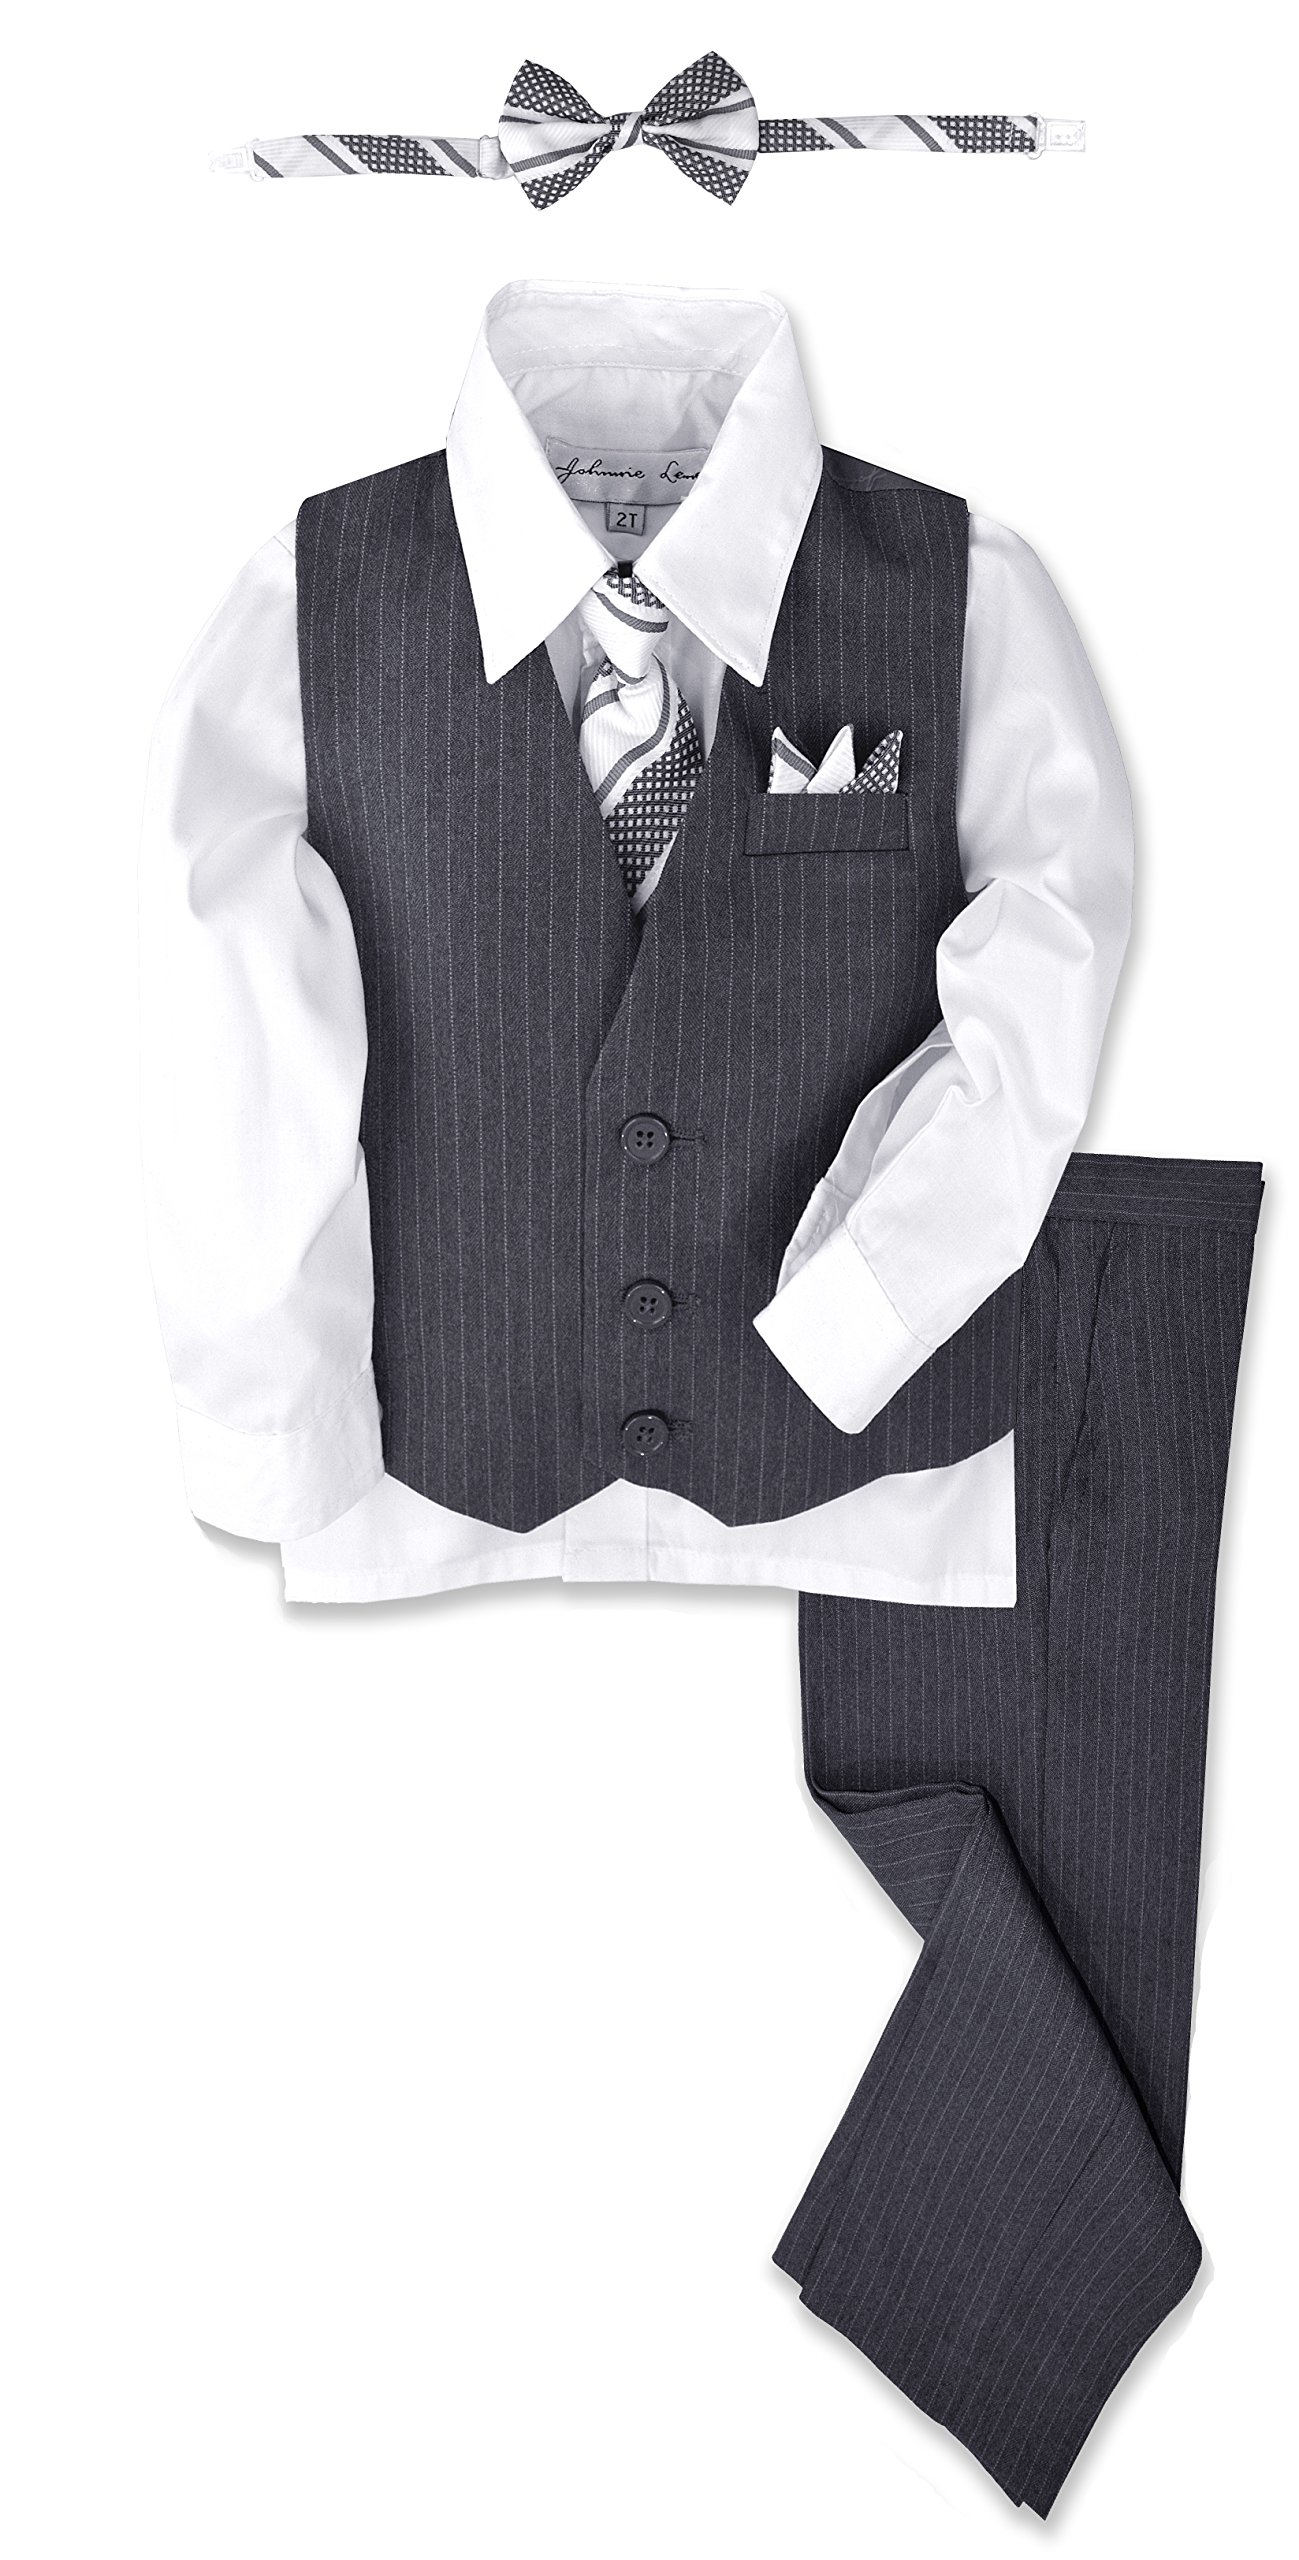 JL40 Pinstripe Boys Formal Dresswear Vest Set (5, Gray/White)